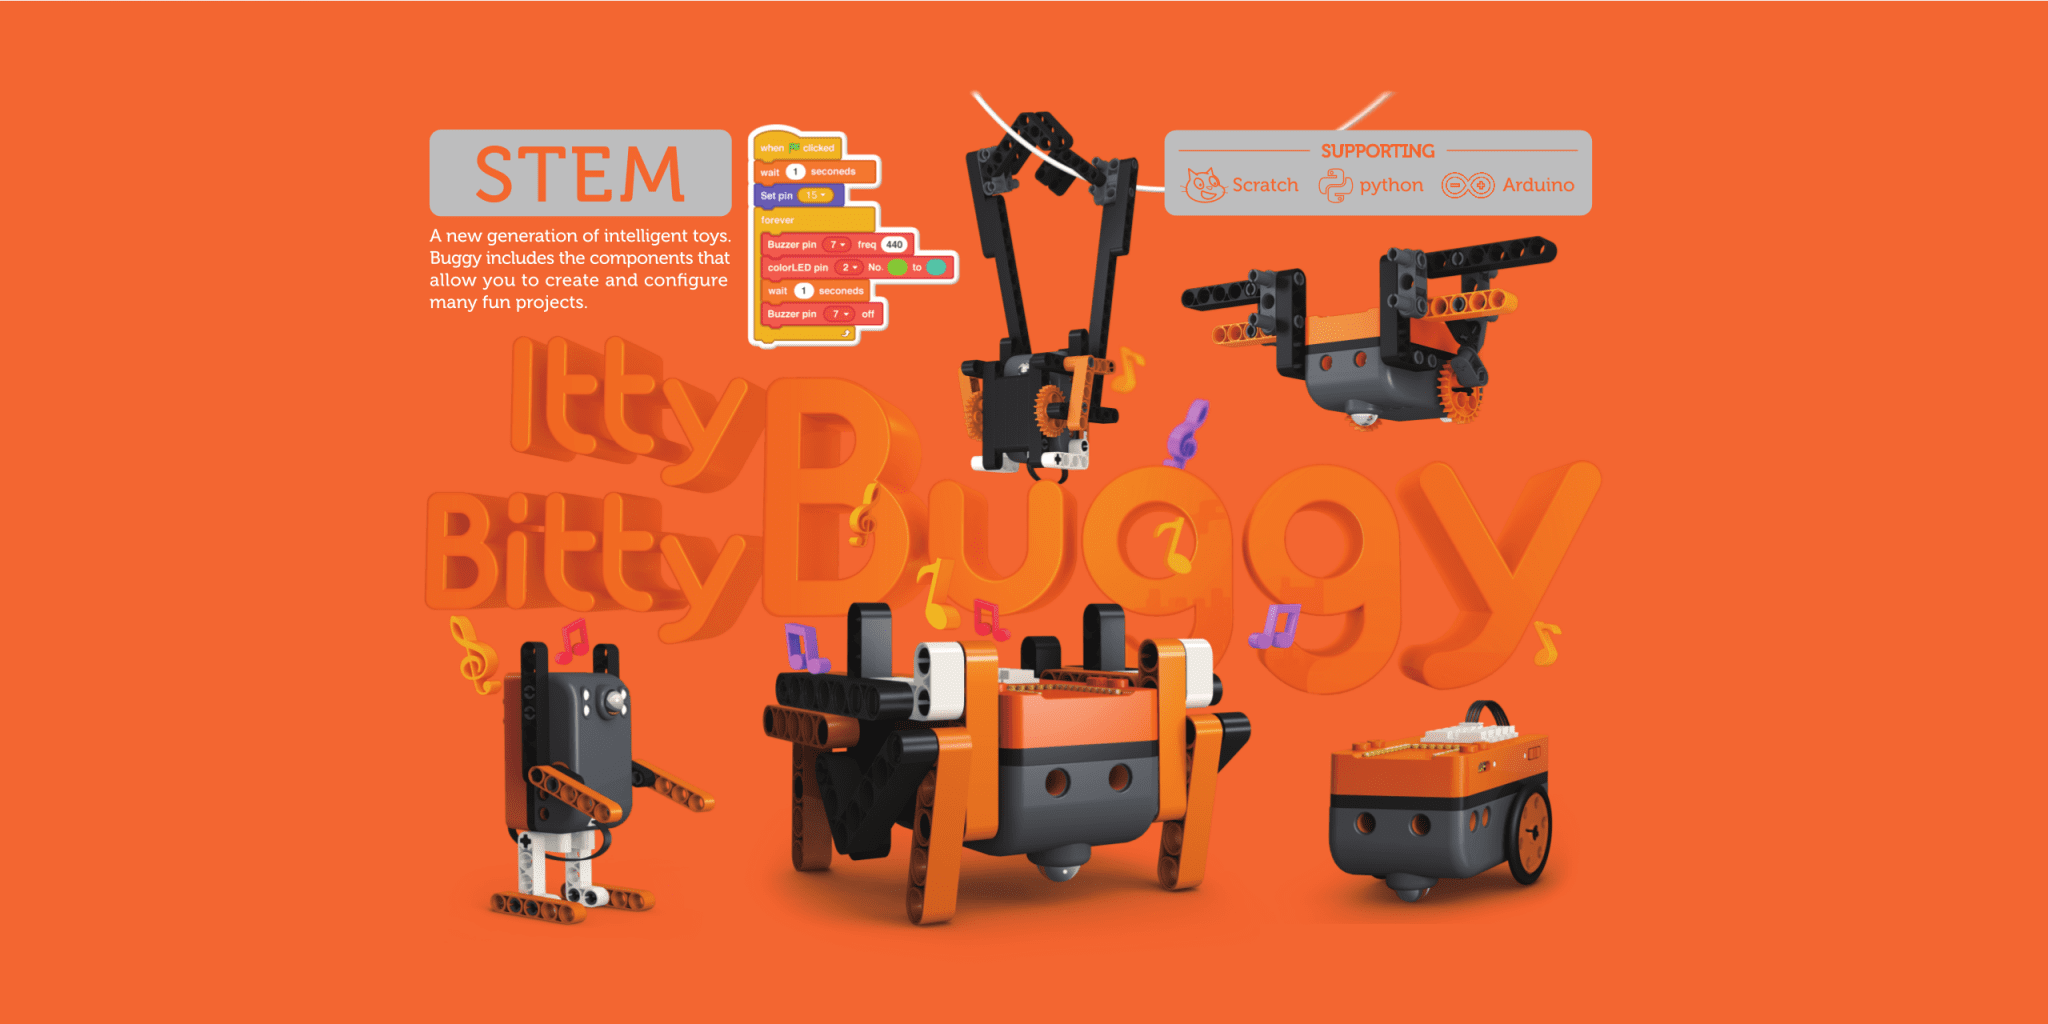 image of Itty Bitty Buggy which support Scratch python and Arduino for STEM education